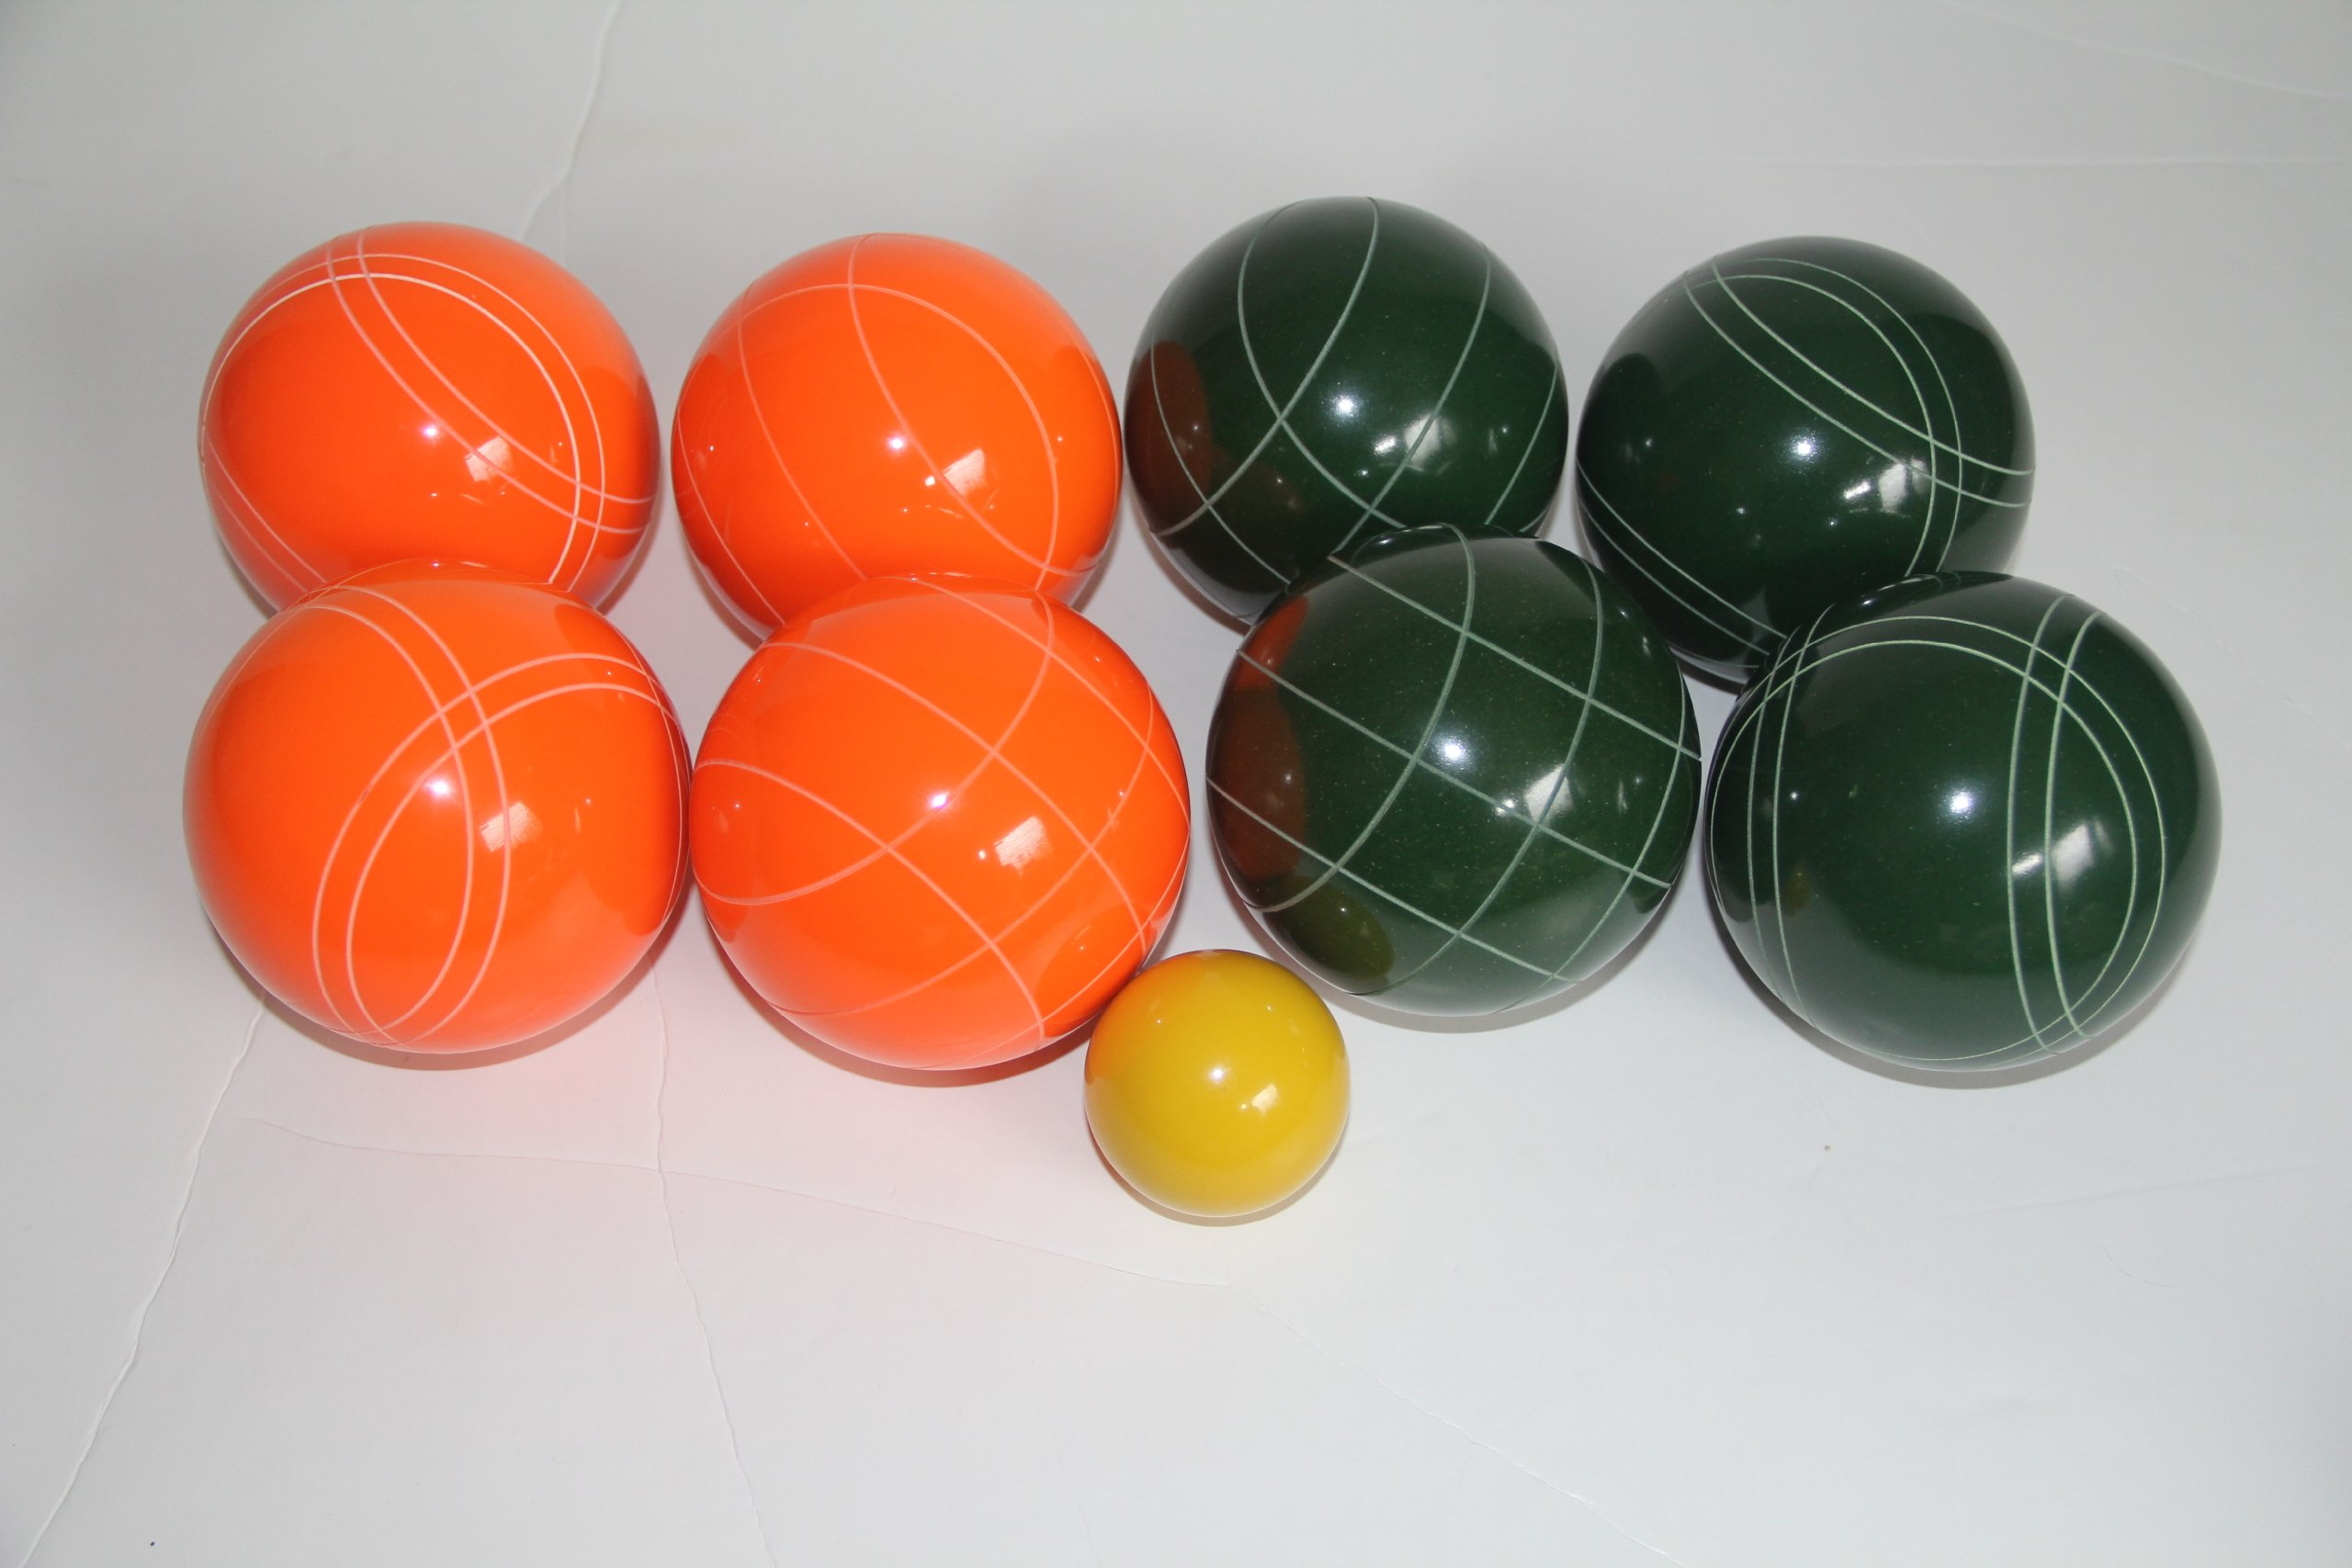 Premium Quality Epco Tournament Set - 110mm Orange and Green Bocce Balls - No BAG Option [Toy]